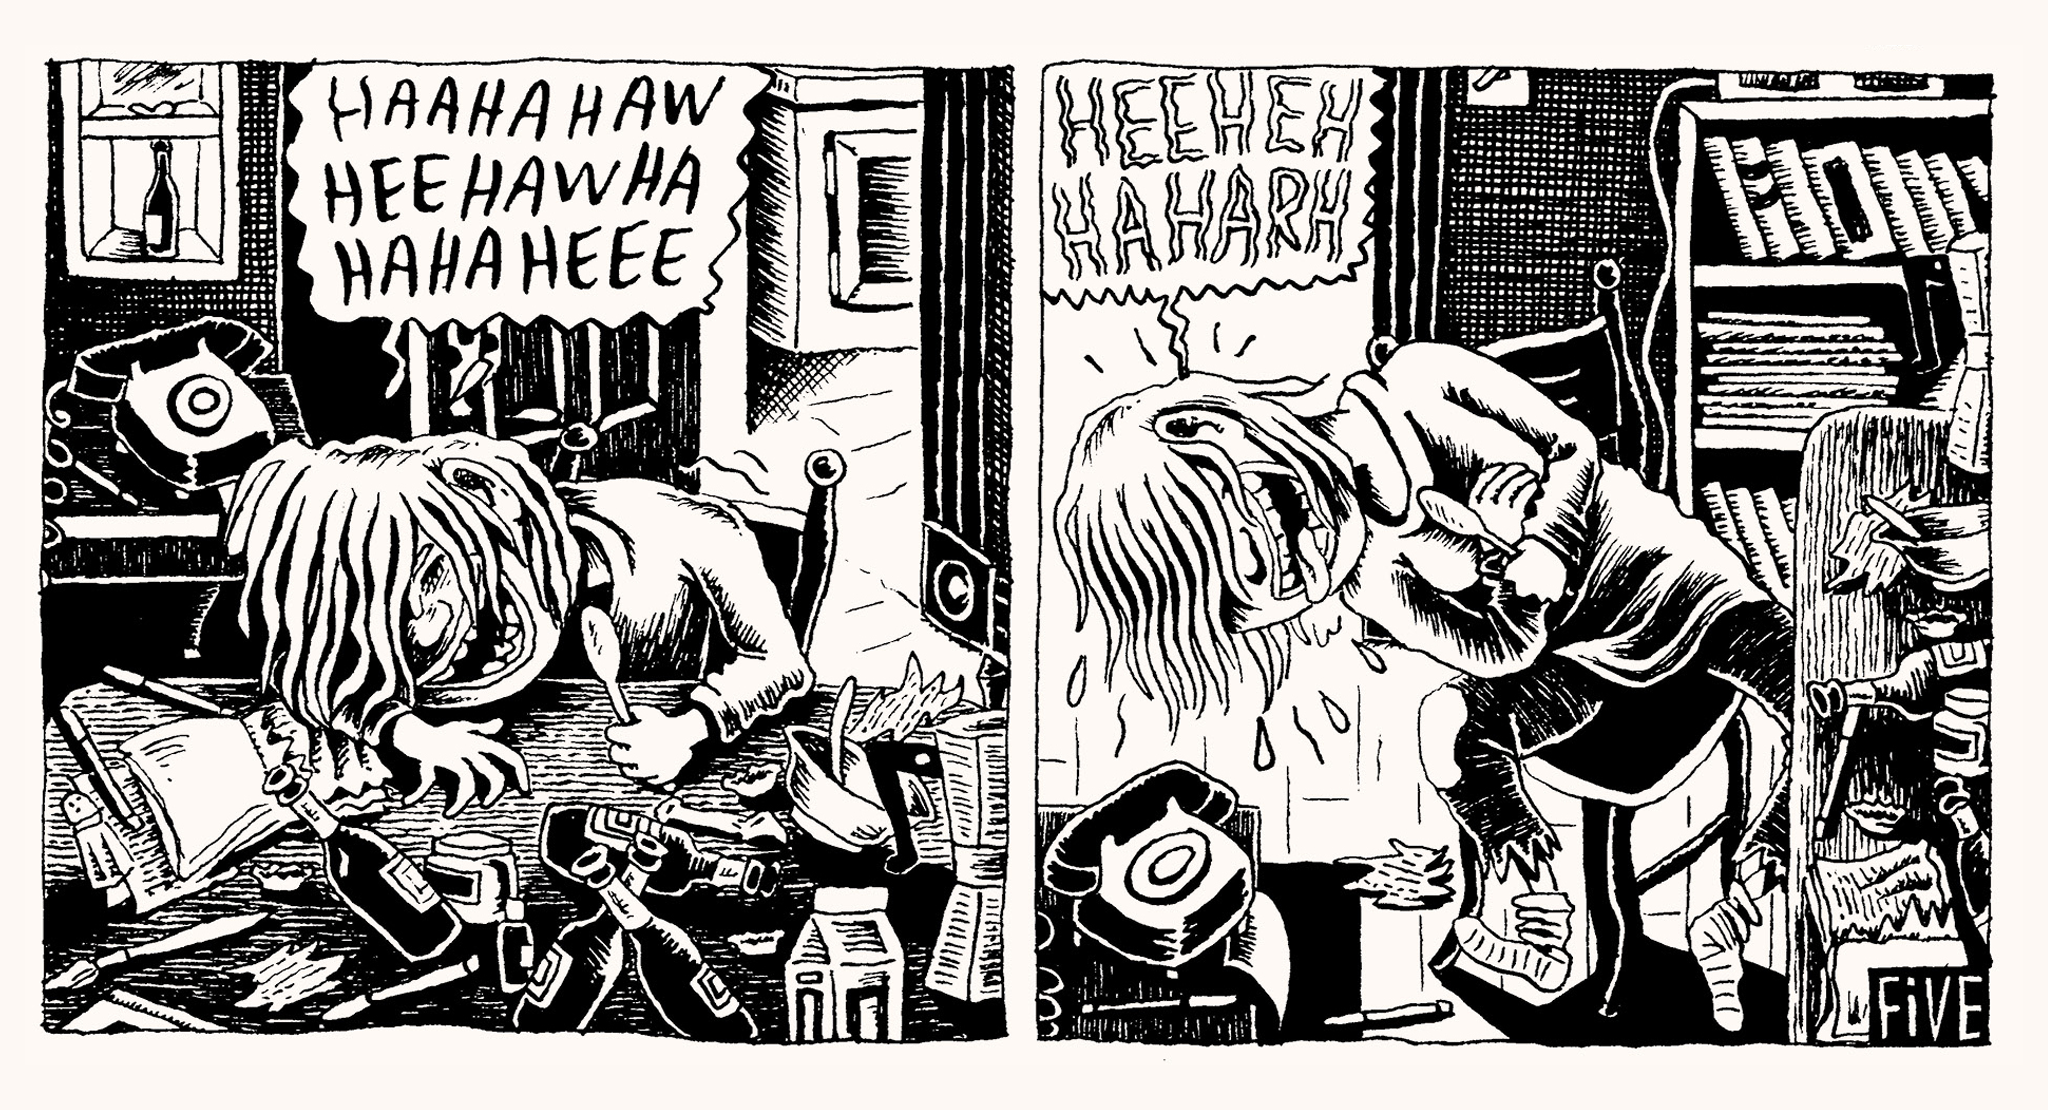 THIS IS SERIOUS Exhibition Showcase: Julie Doucet